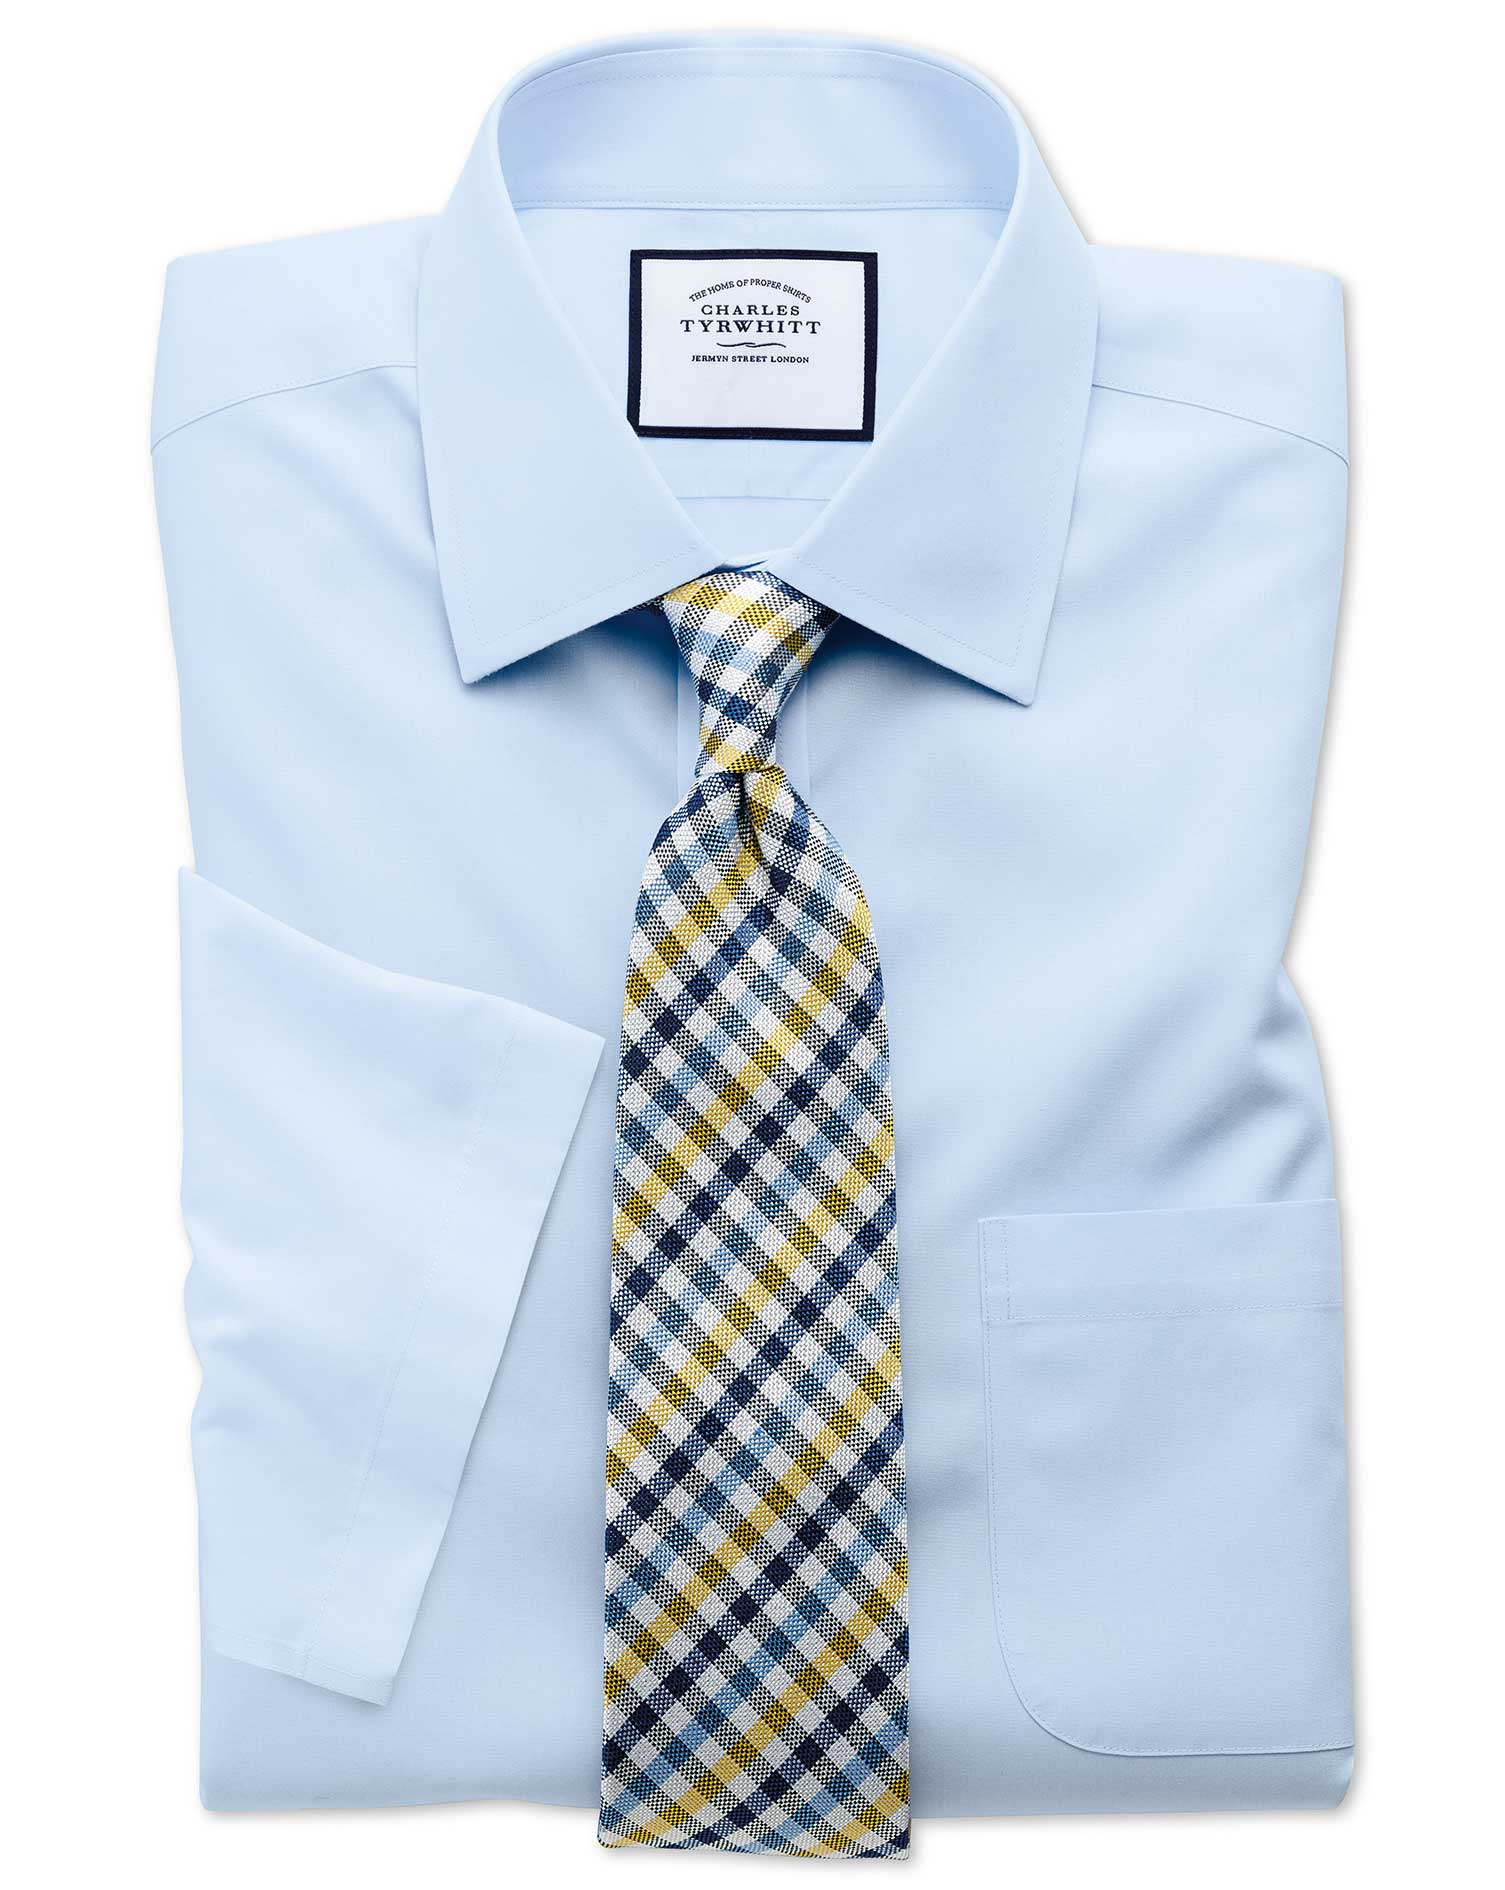 Classic Fit Non-Iron Poplin Short Sleeve Sky Blue Cotton Formal Shirt Size 17.5/Short by Charles Tyr